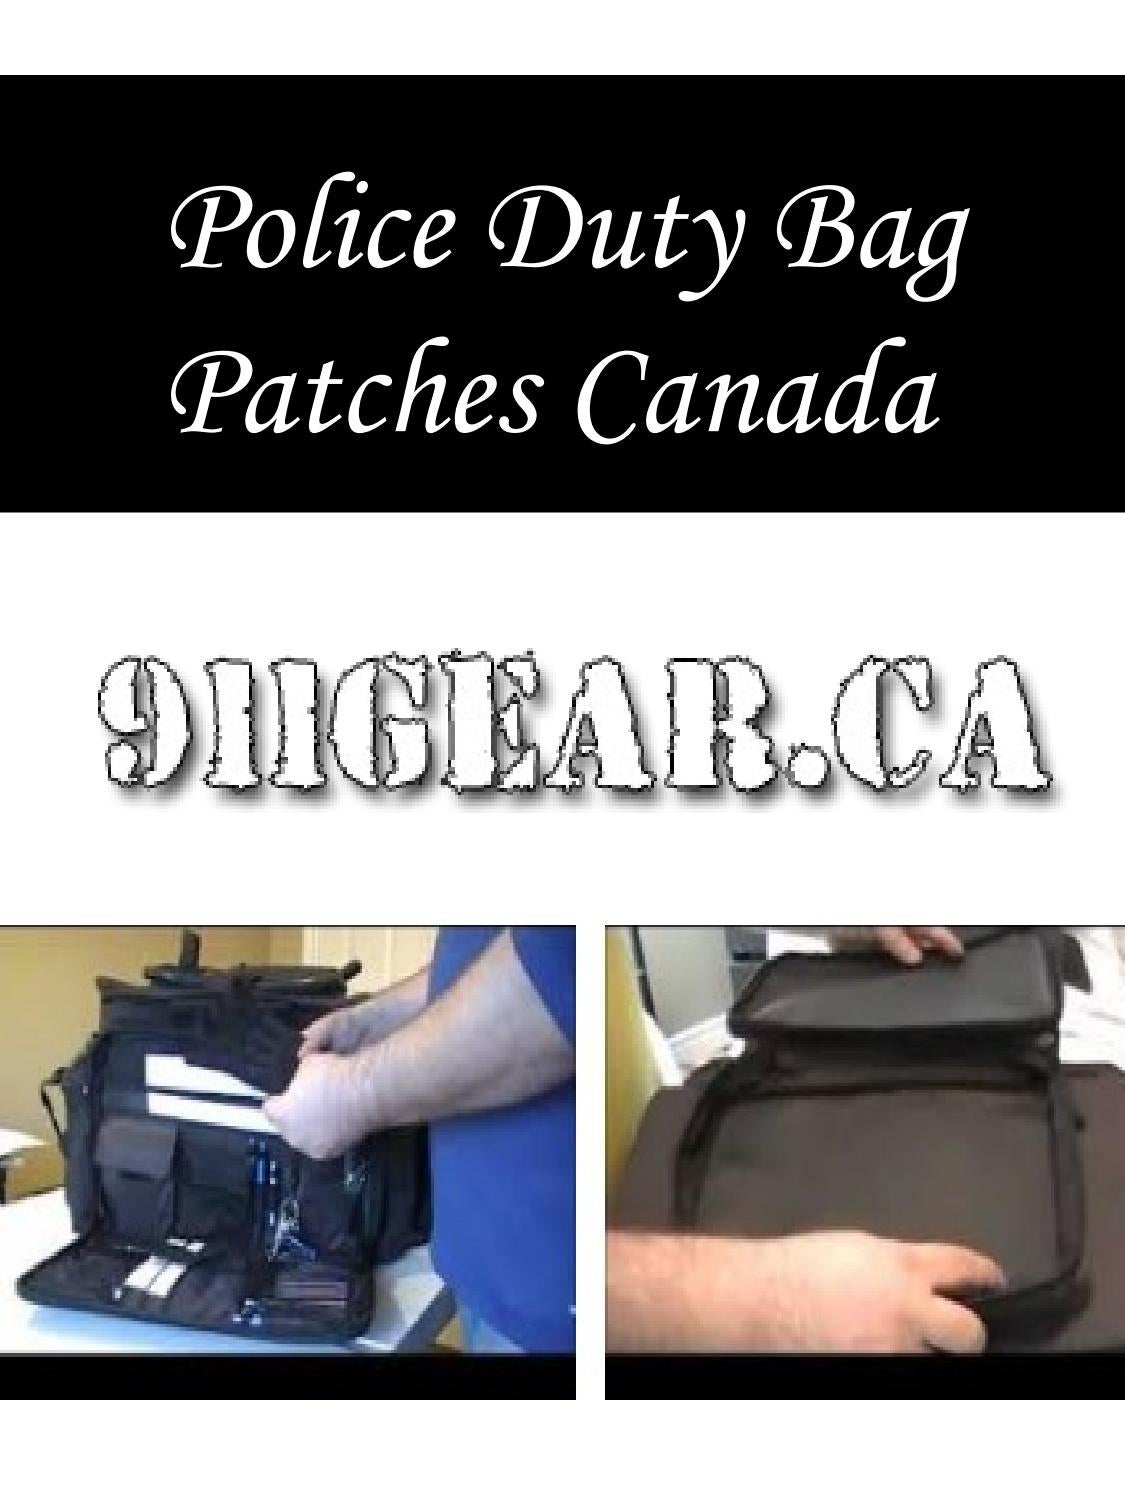 Police Duty Bag Patches Canada by Garry - issuu